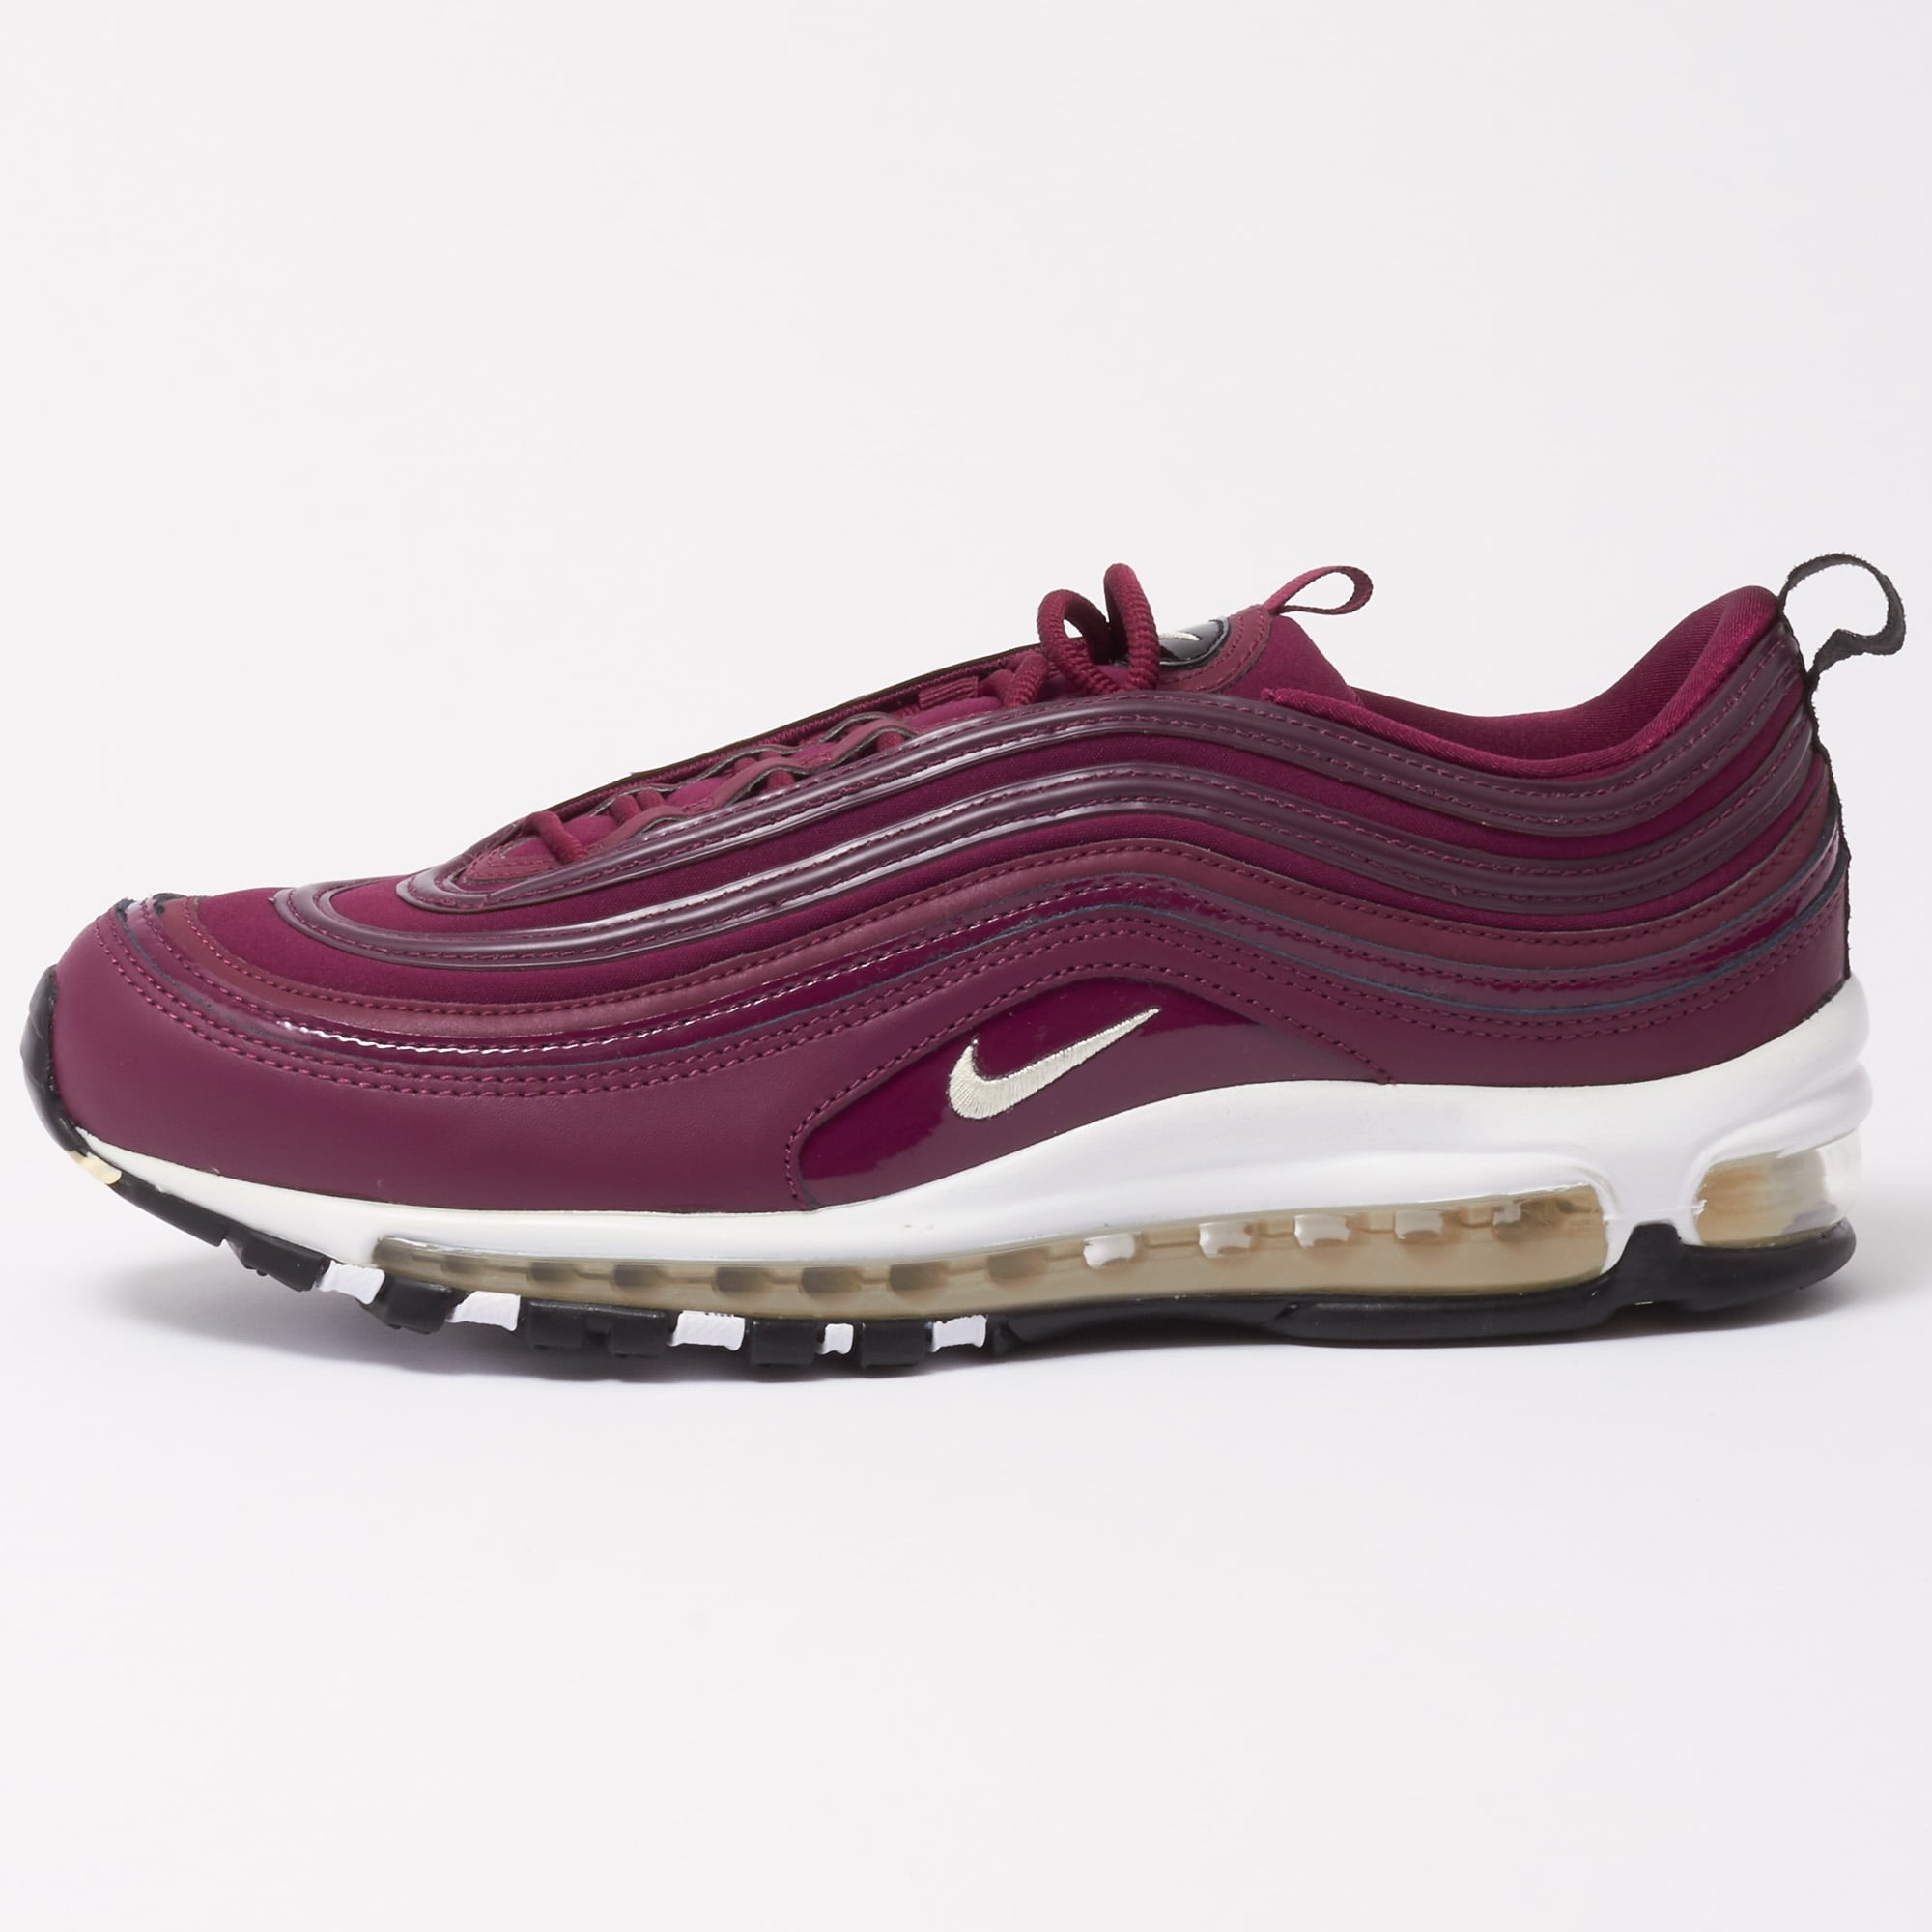 nike air max 97 white dragon red nz